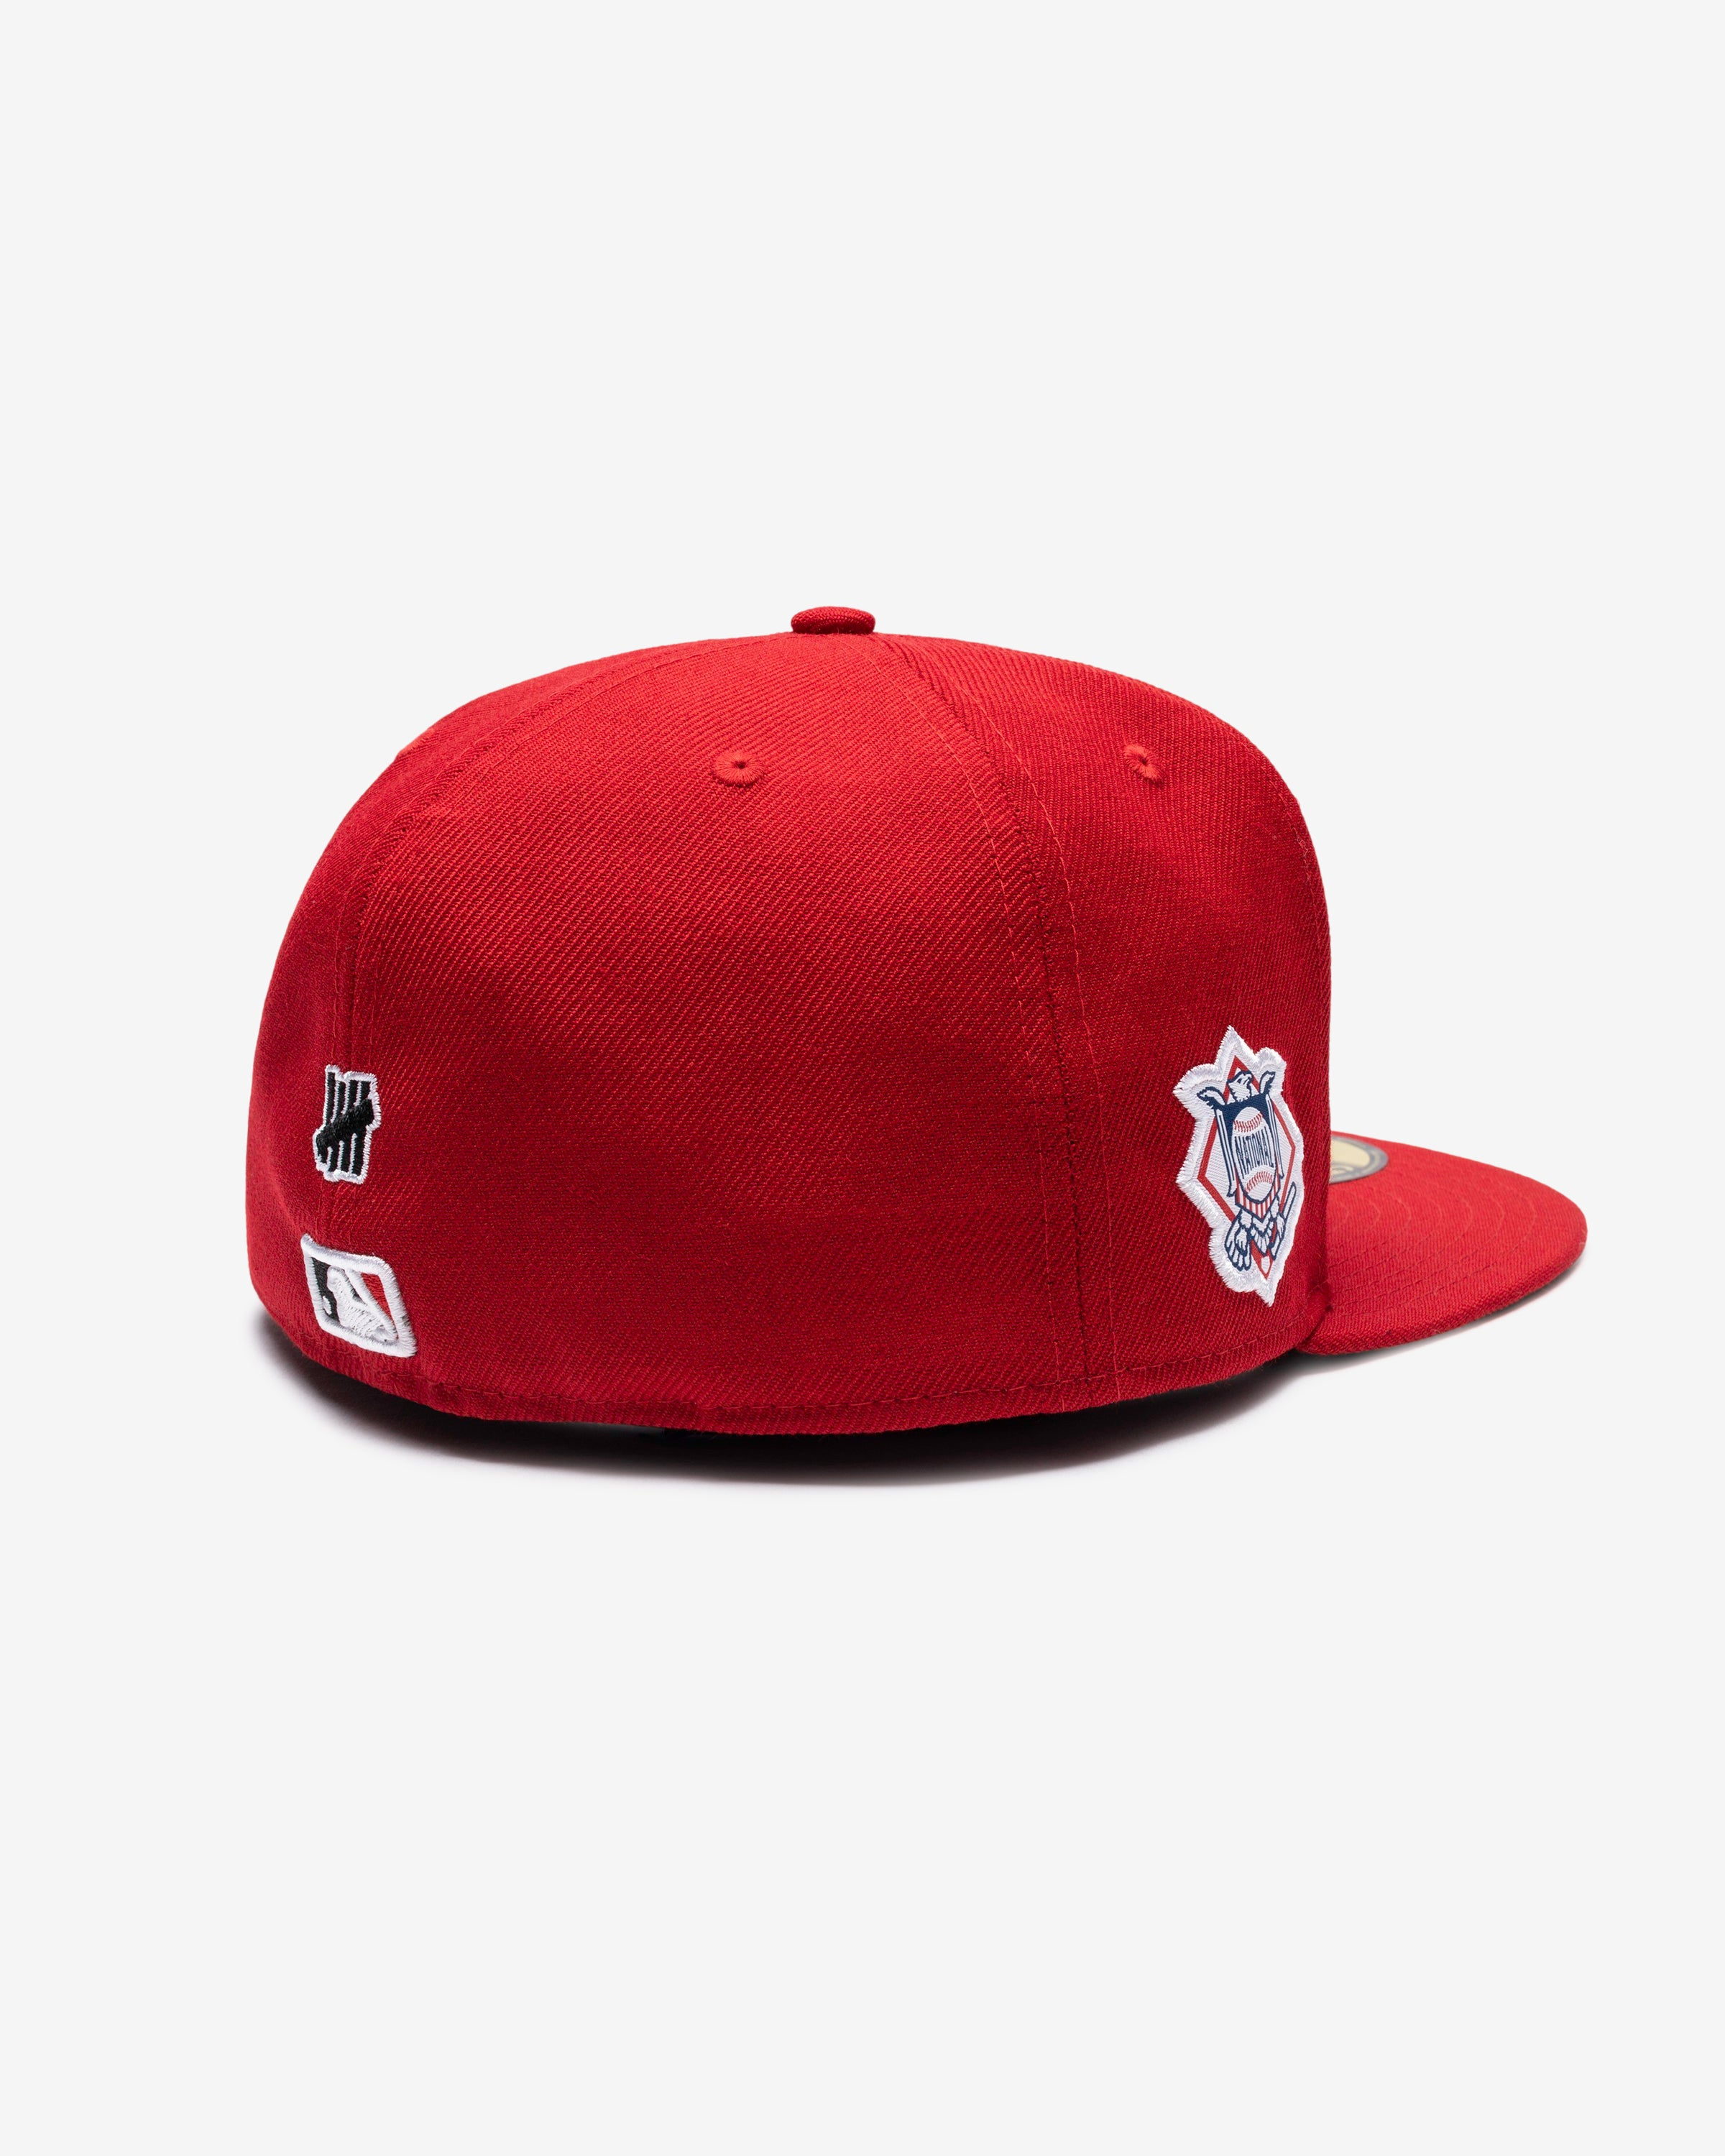 UNDEFEATED X NE X MLB FITTED - CINCINNATI REDS